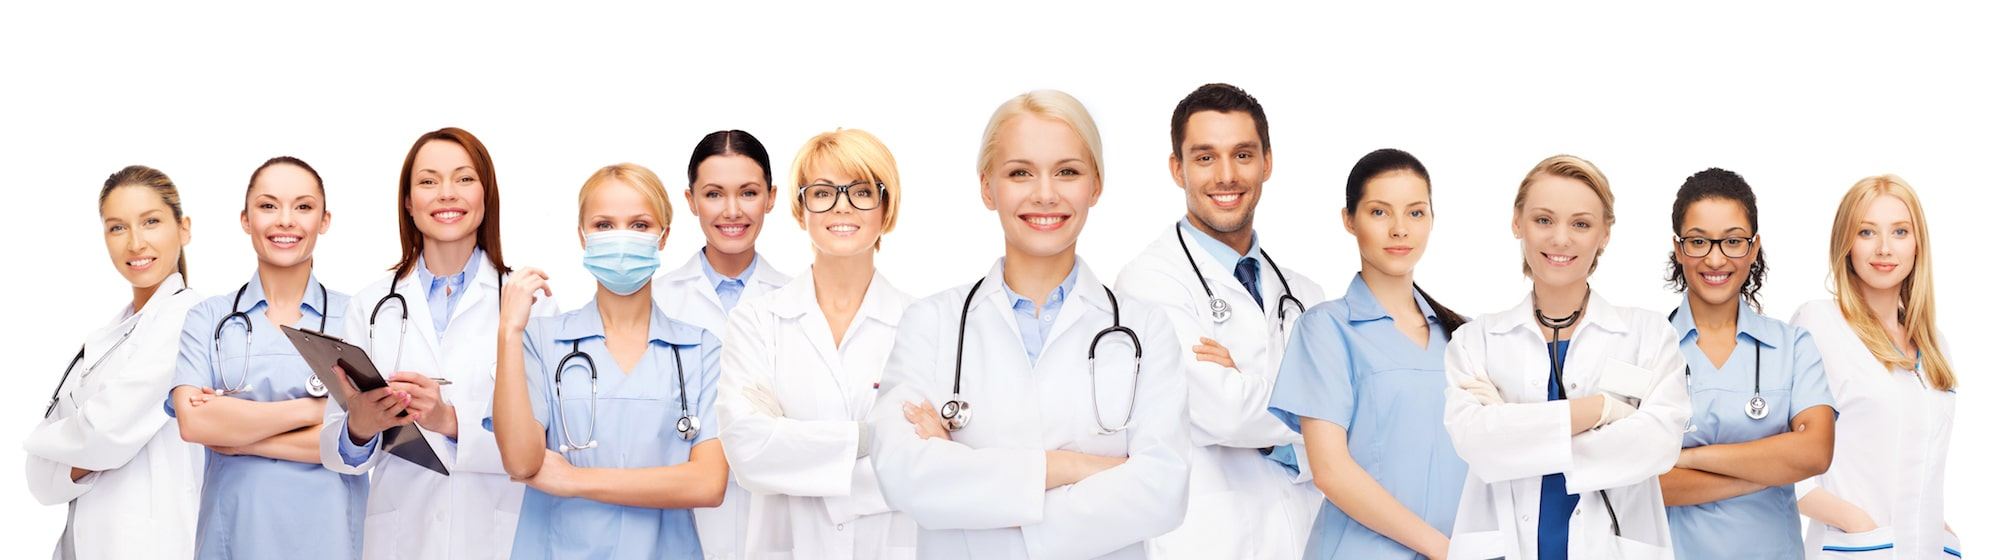 Learn the Top 4 benefits enjoyed by doctors on Cosmetic Town